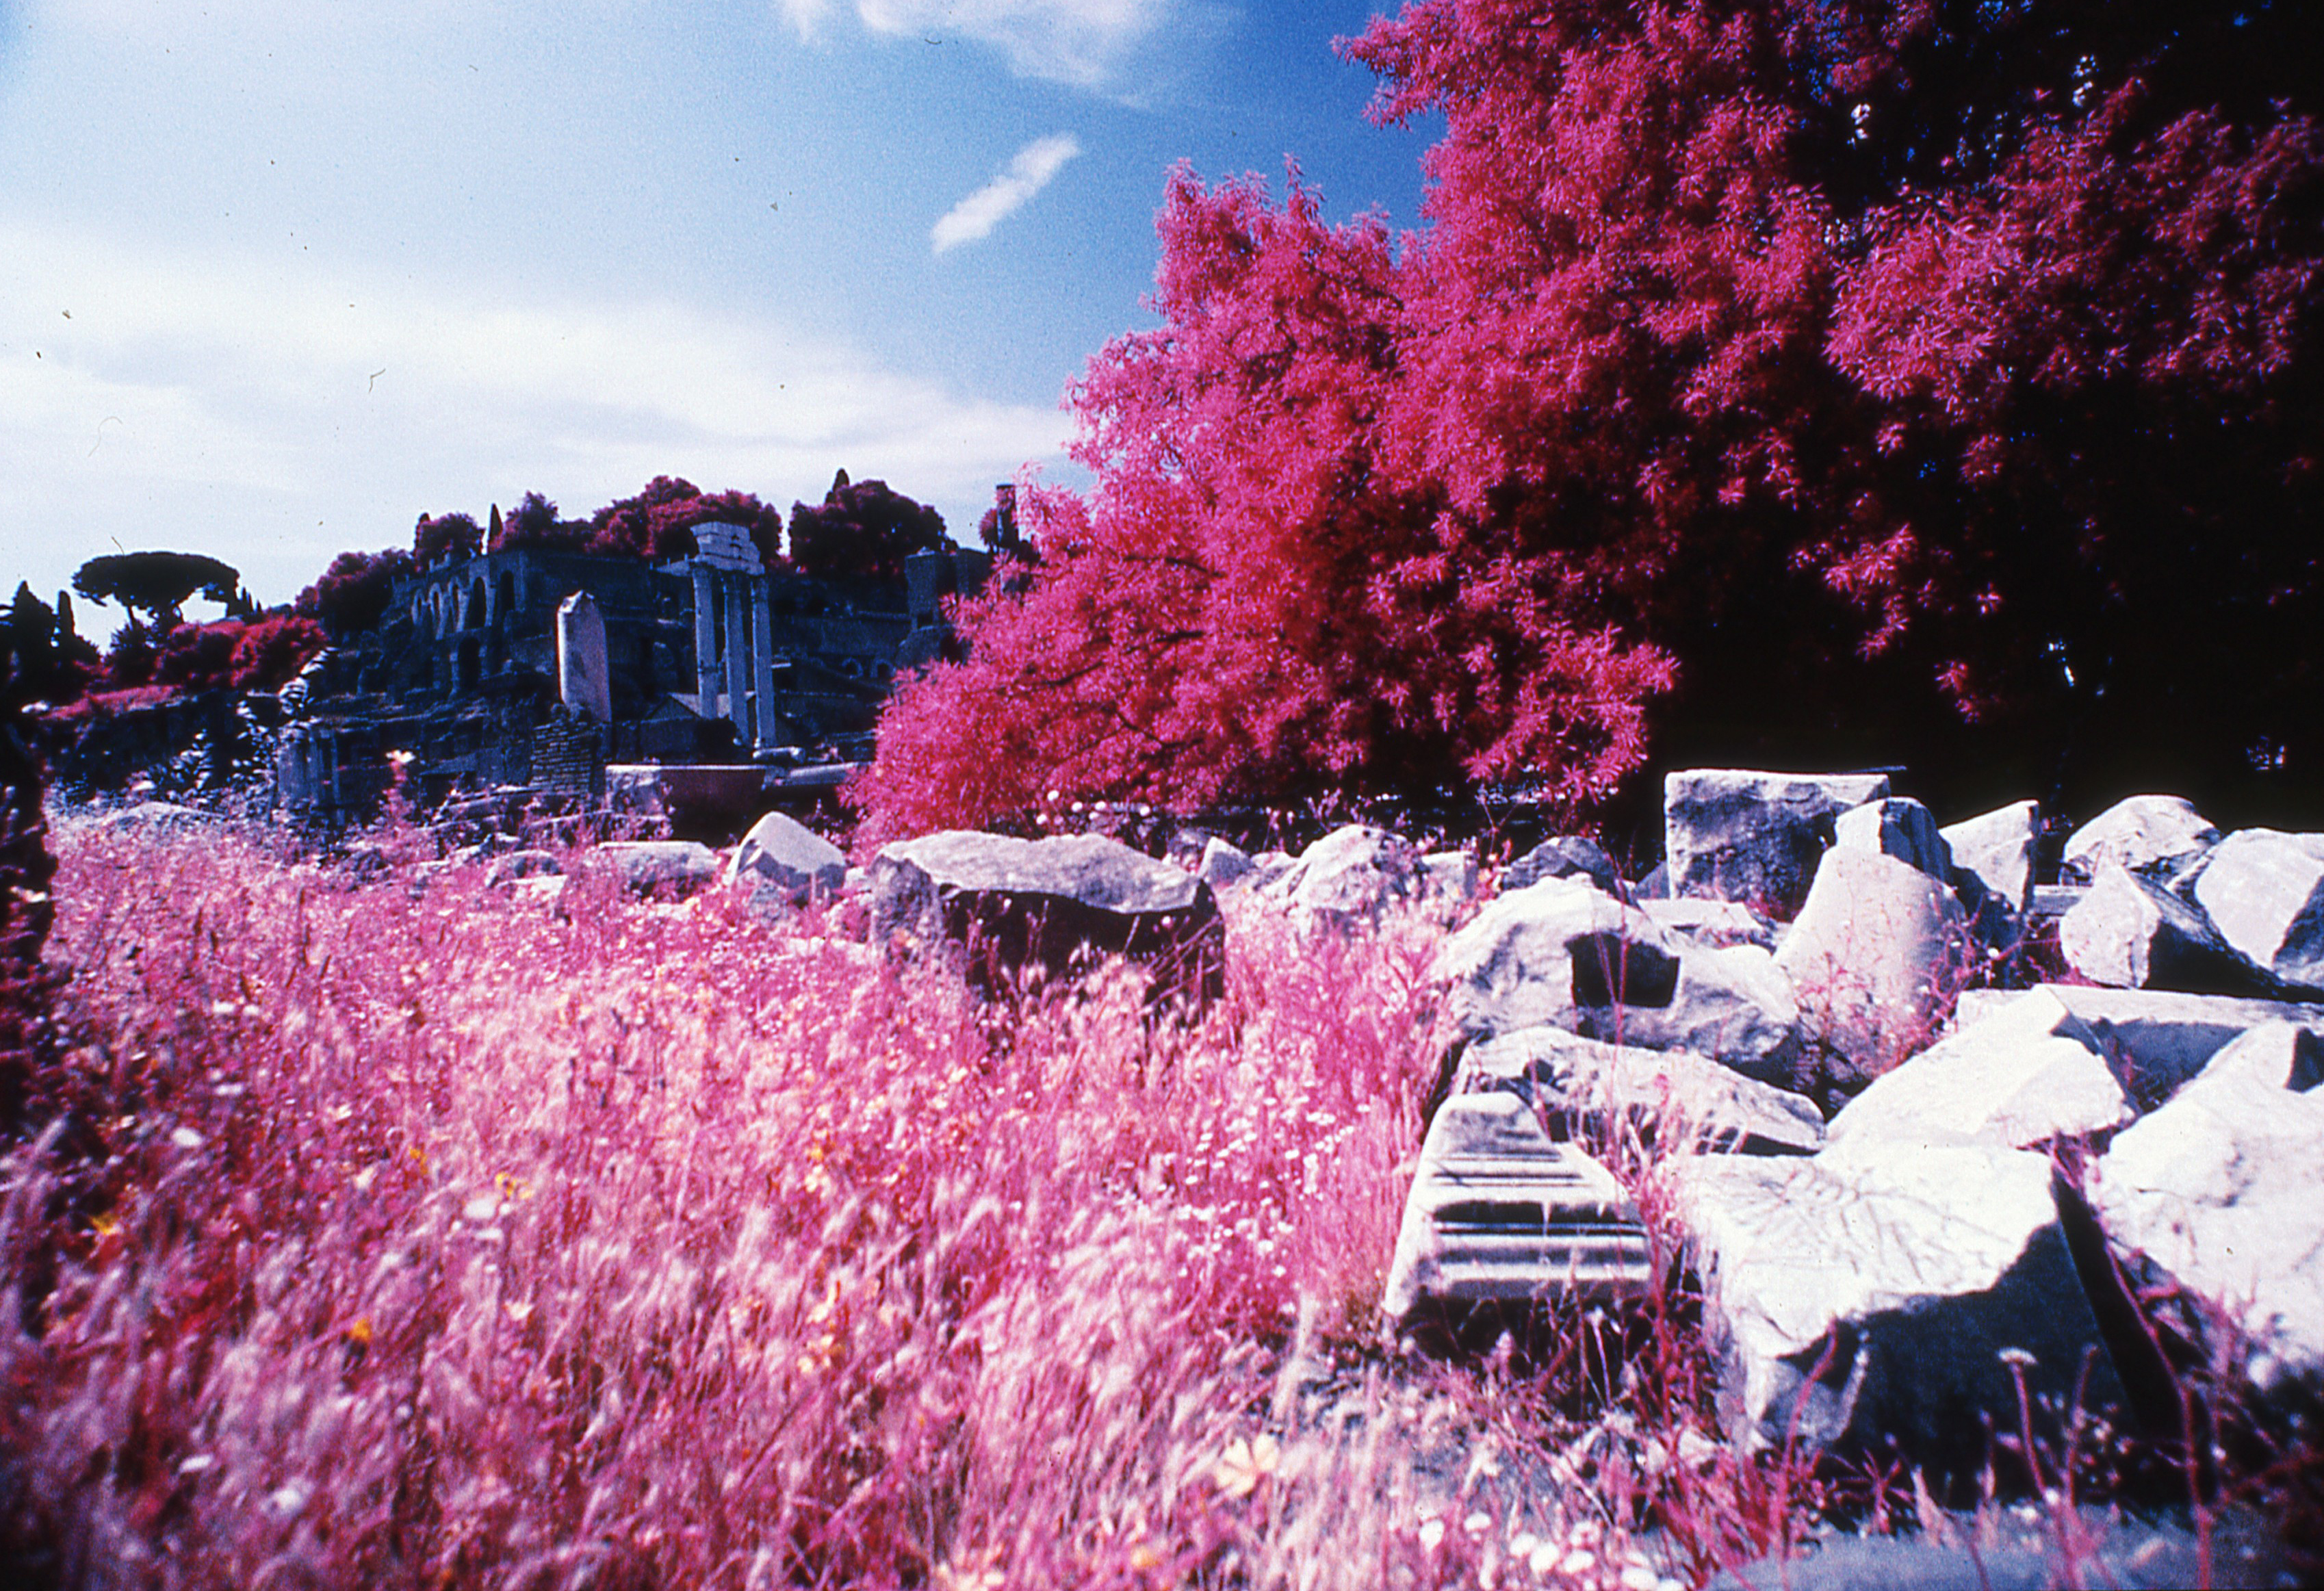 Infrared Rome Cool sHOT